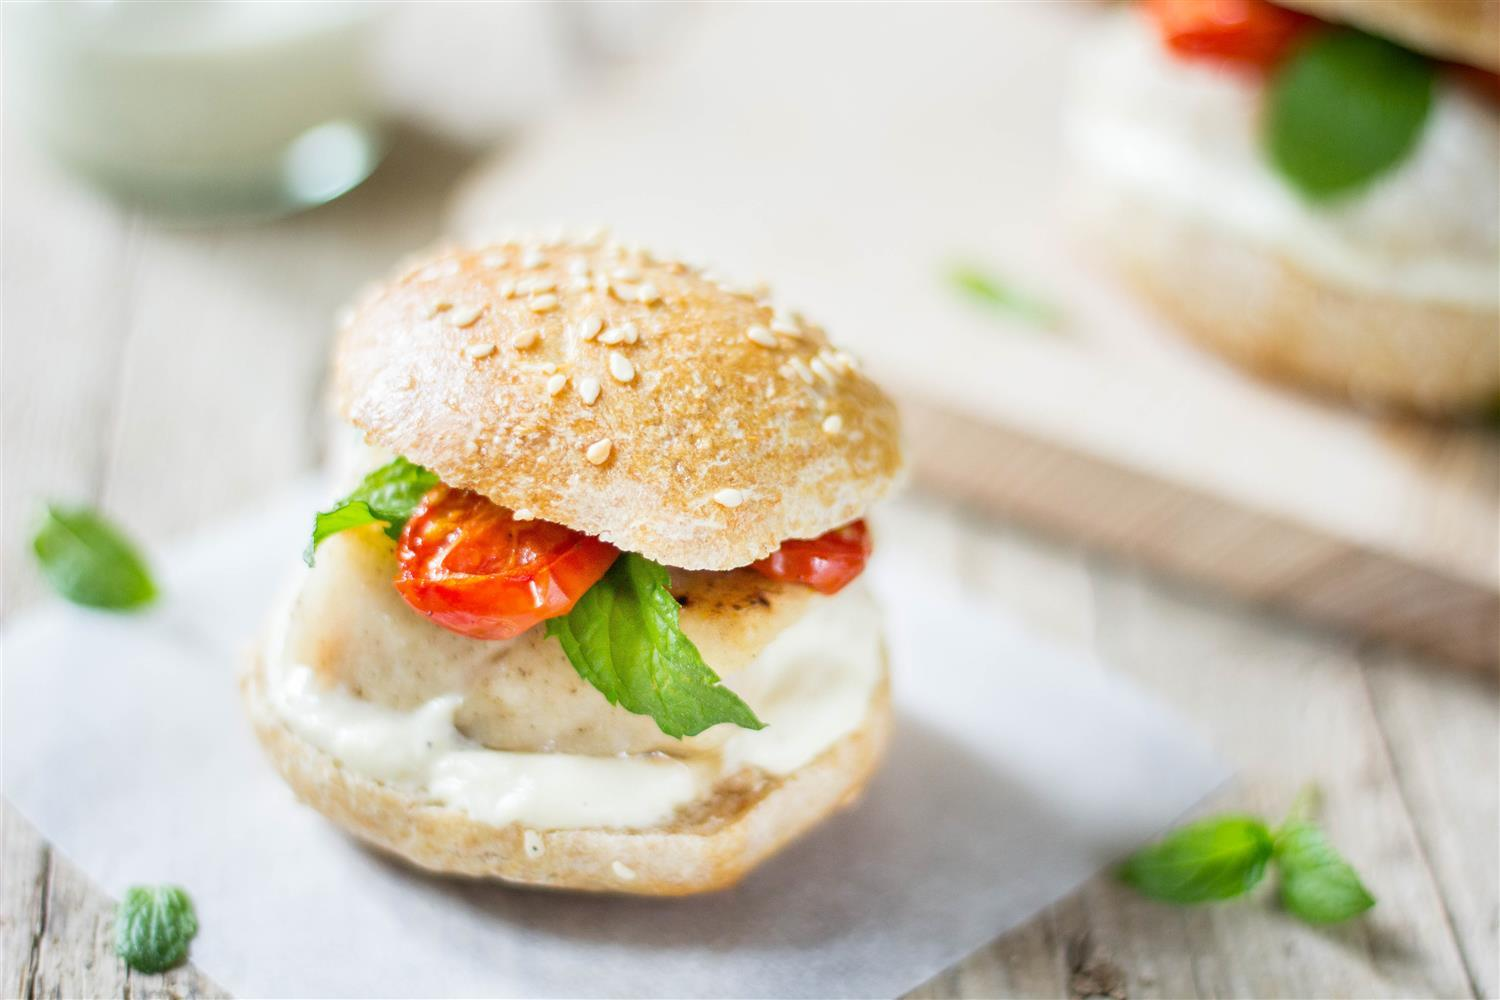 Use Your Noodles - Simple Fish Sliders with Roasted Garlic